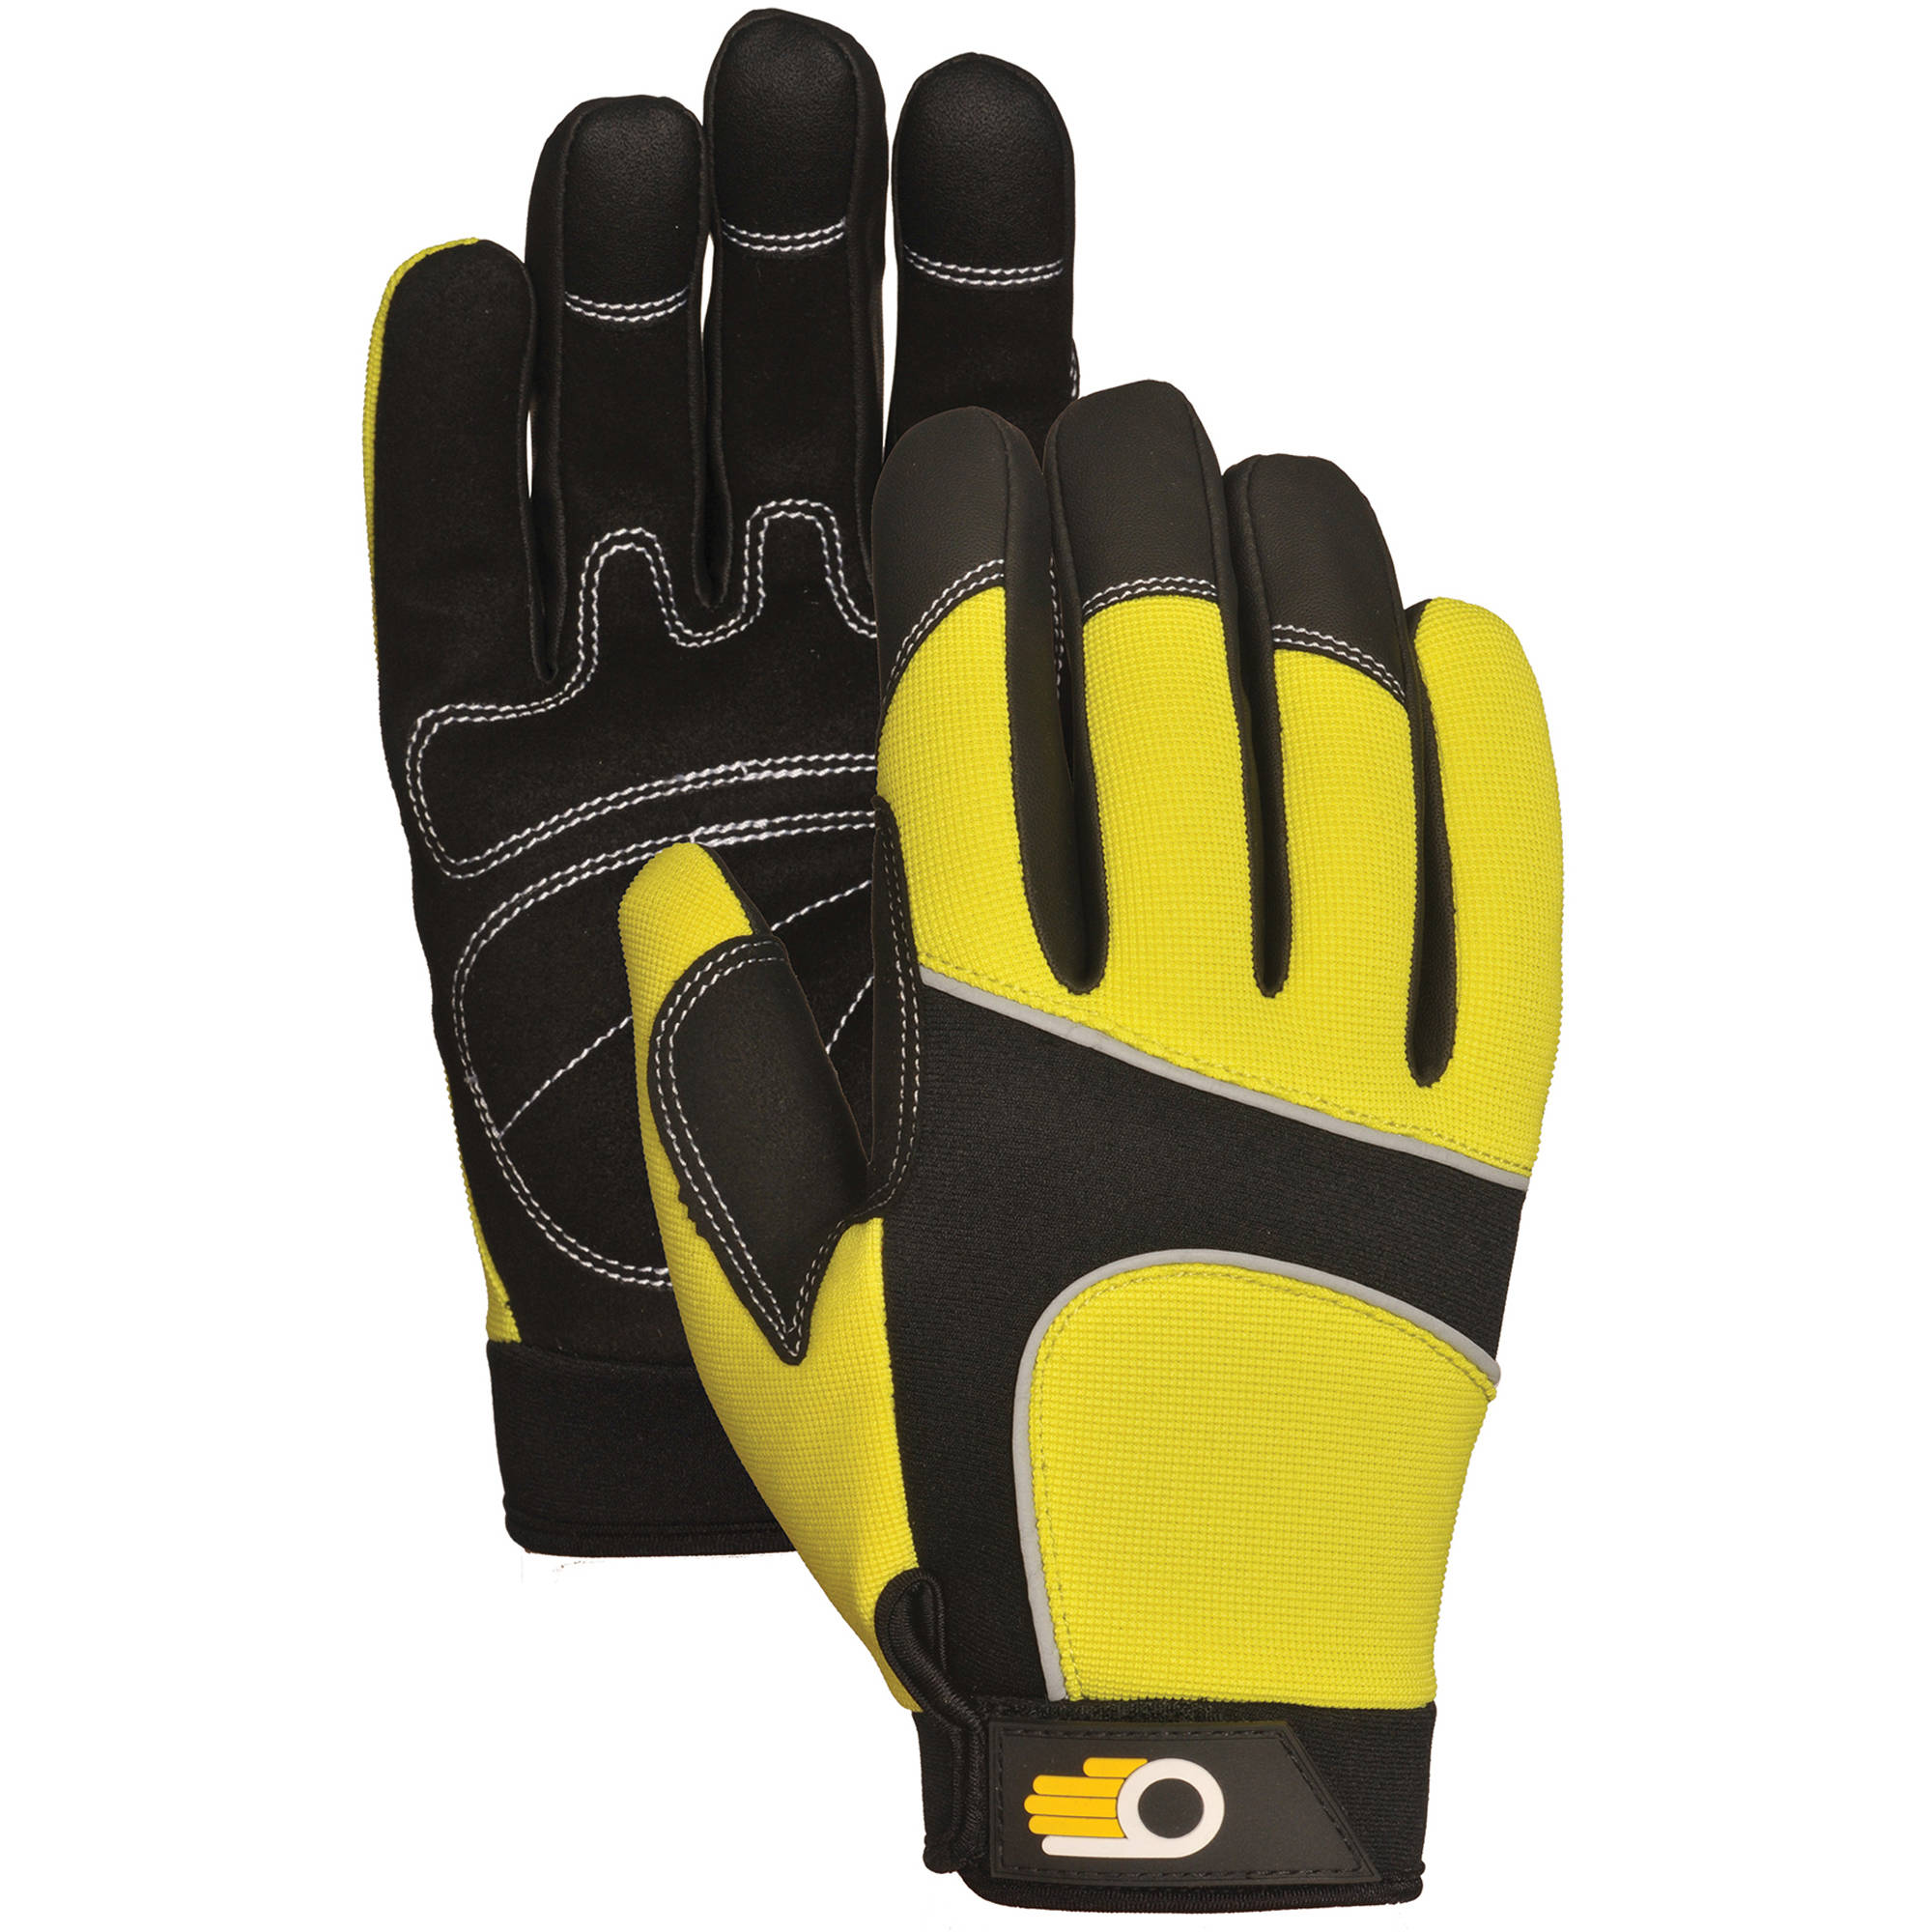 Bellingham Glove C7782HVM Medium Men's Performance Hi Viz Synthetic Palm Gloves